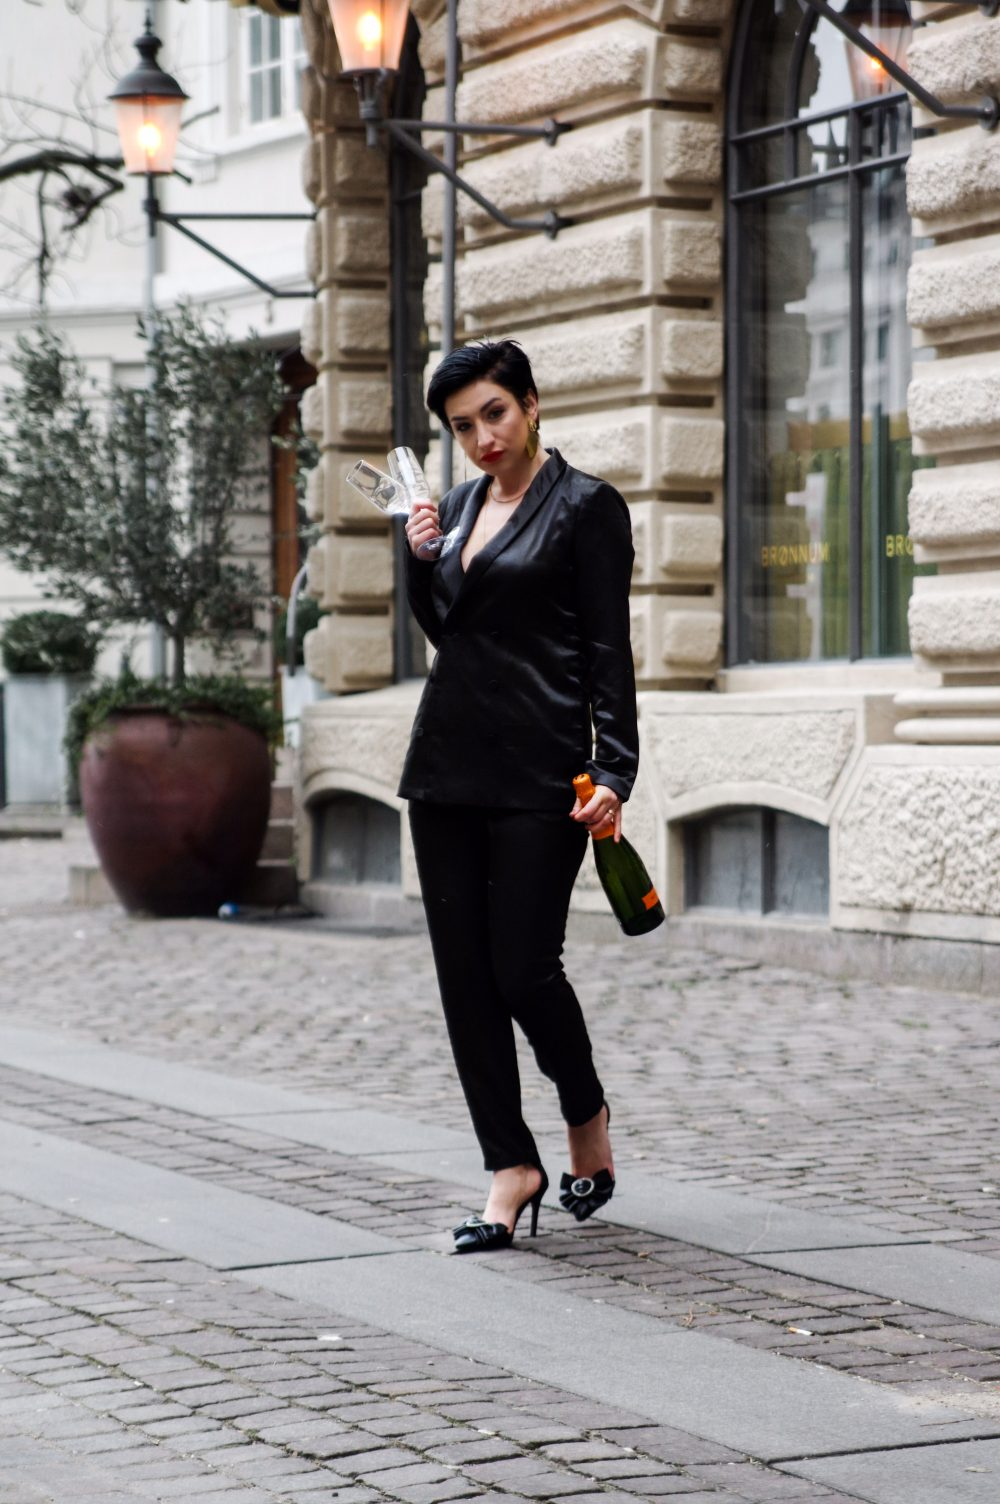 valentines day outfit, black satin suit, date night wear, evening wear, short hairstyle 5